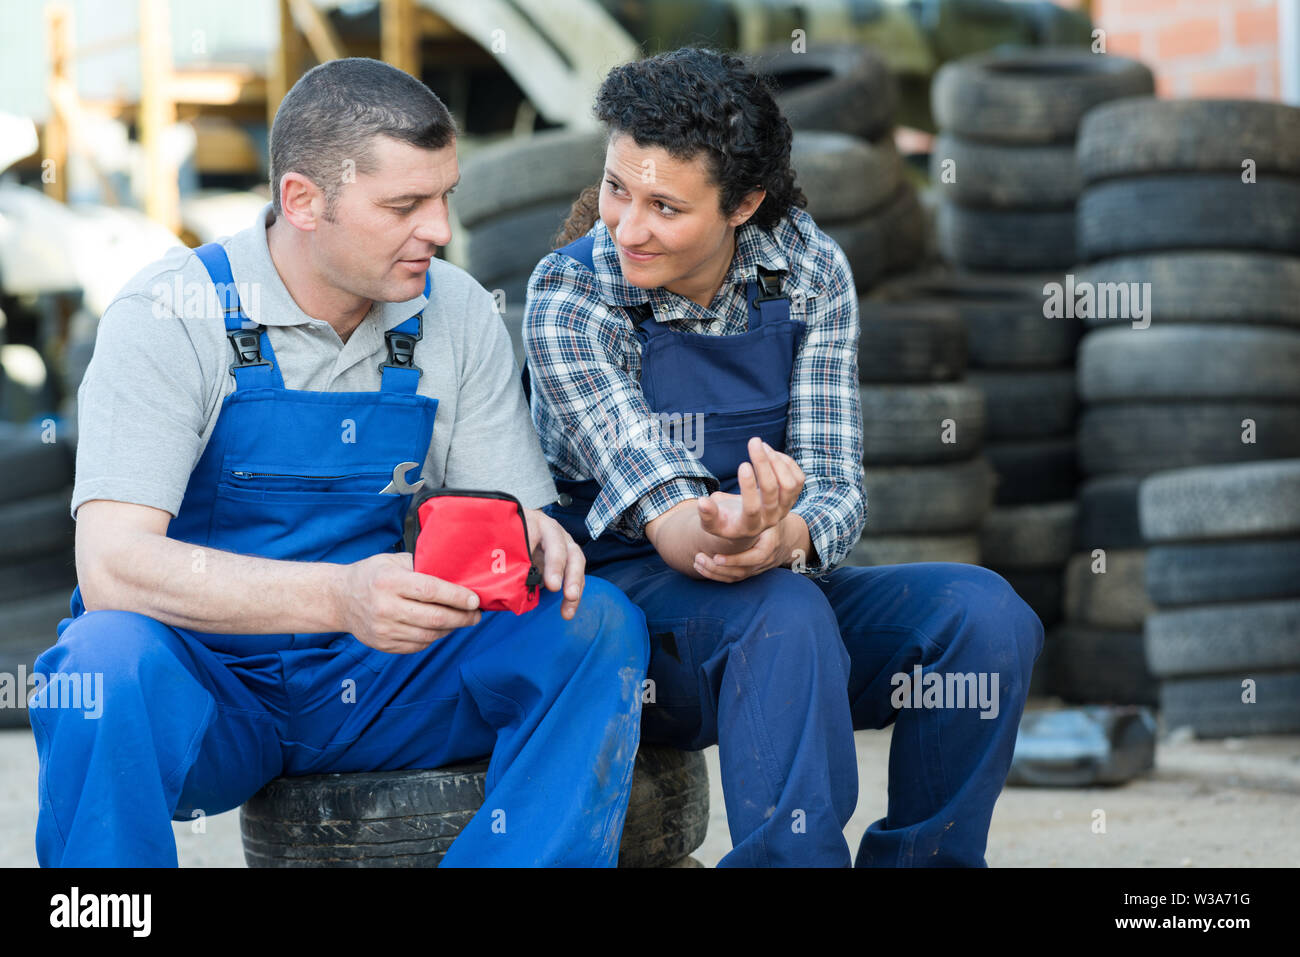 man and woman mechanic looking at arm injure - Stock Image